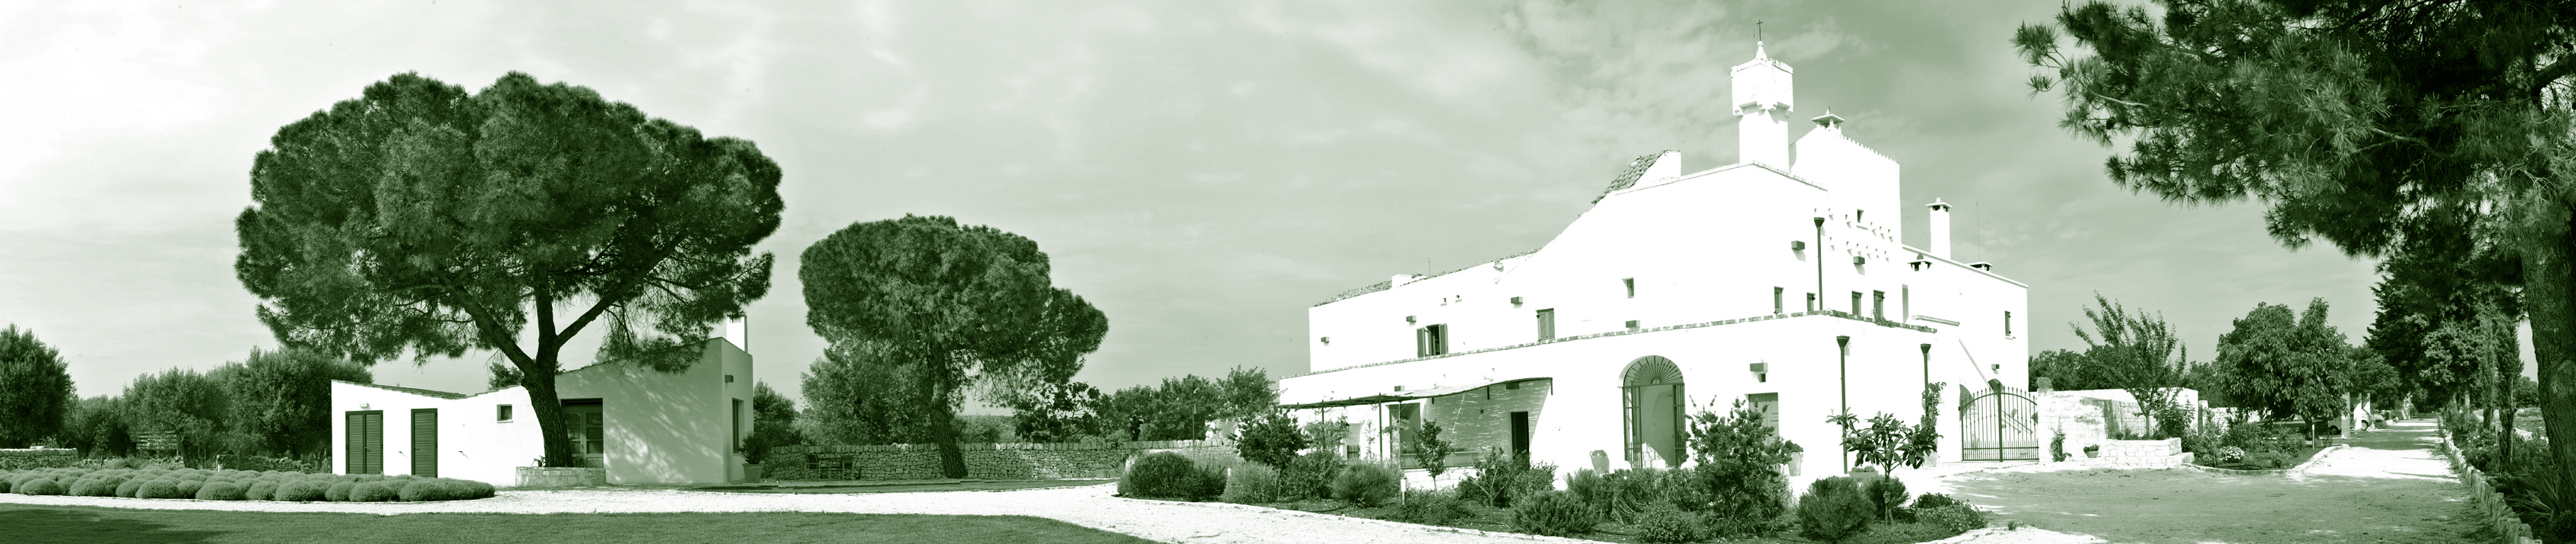 Our wedding in Puglia, Italy at the Masseria Della Zingara